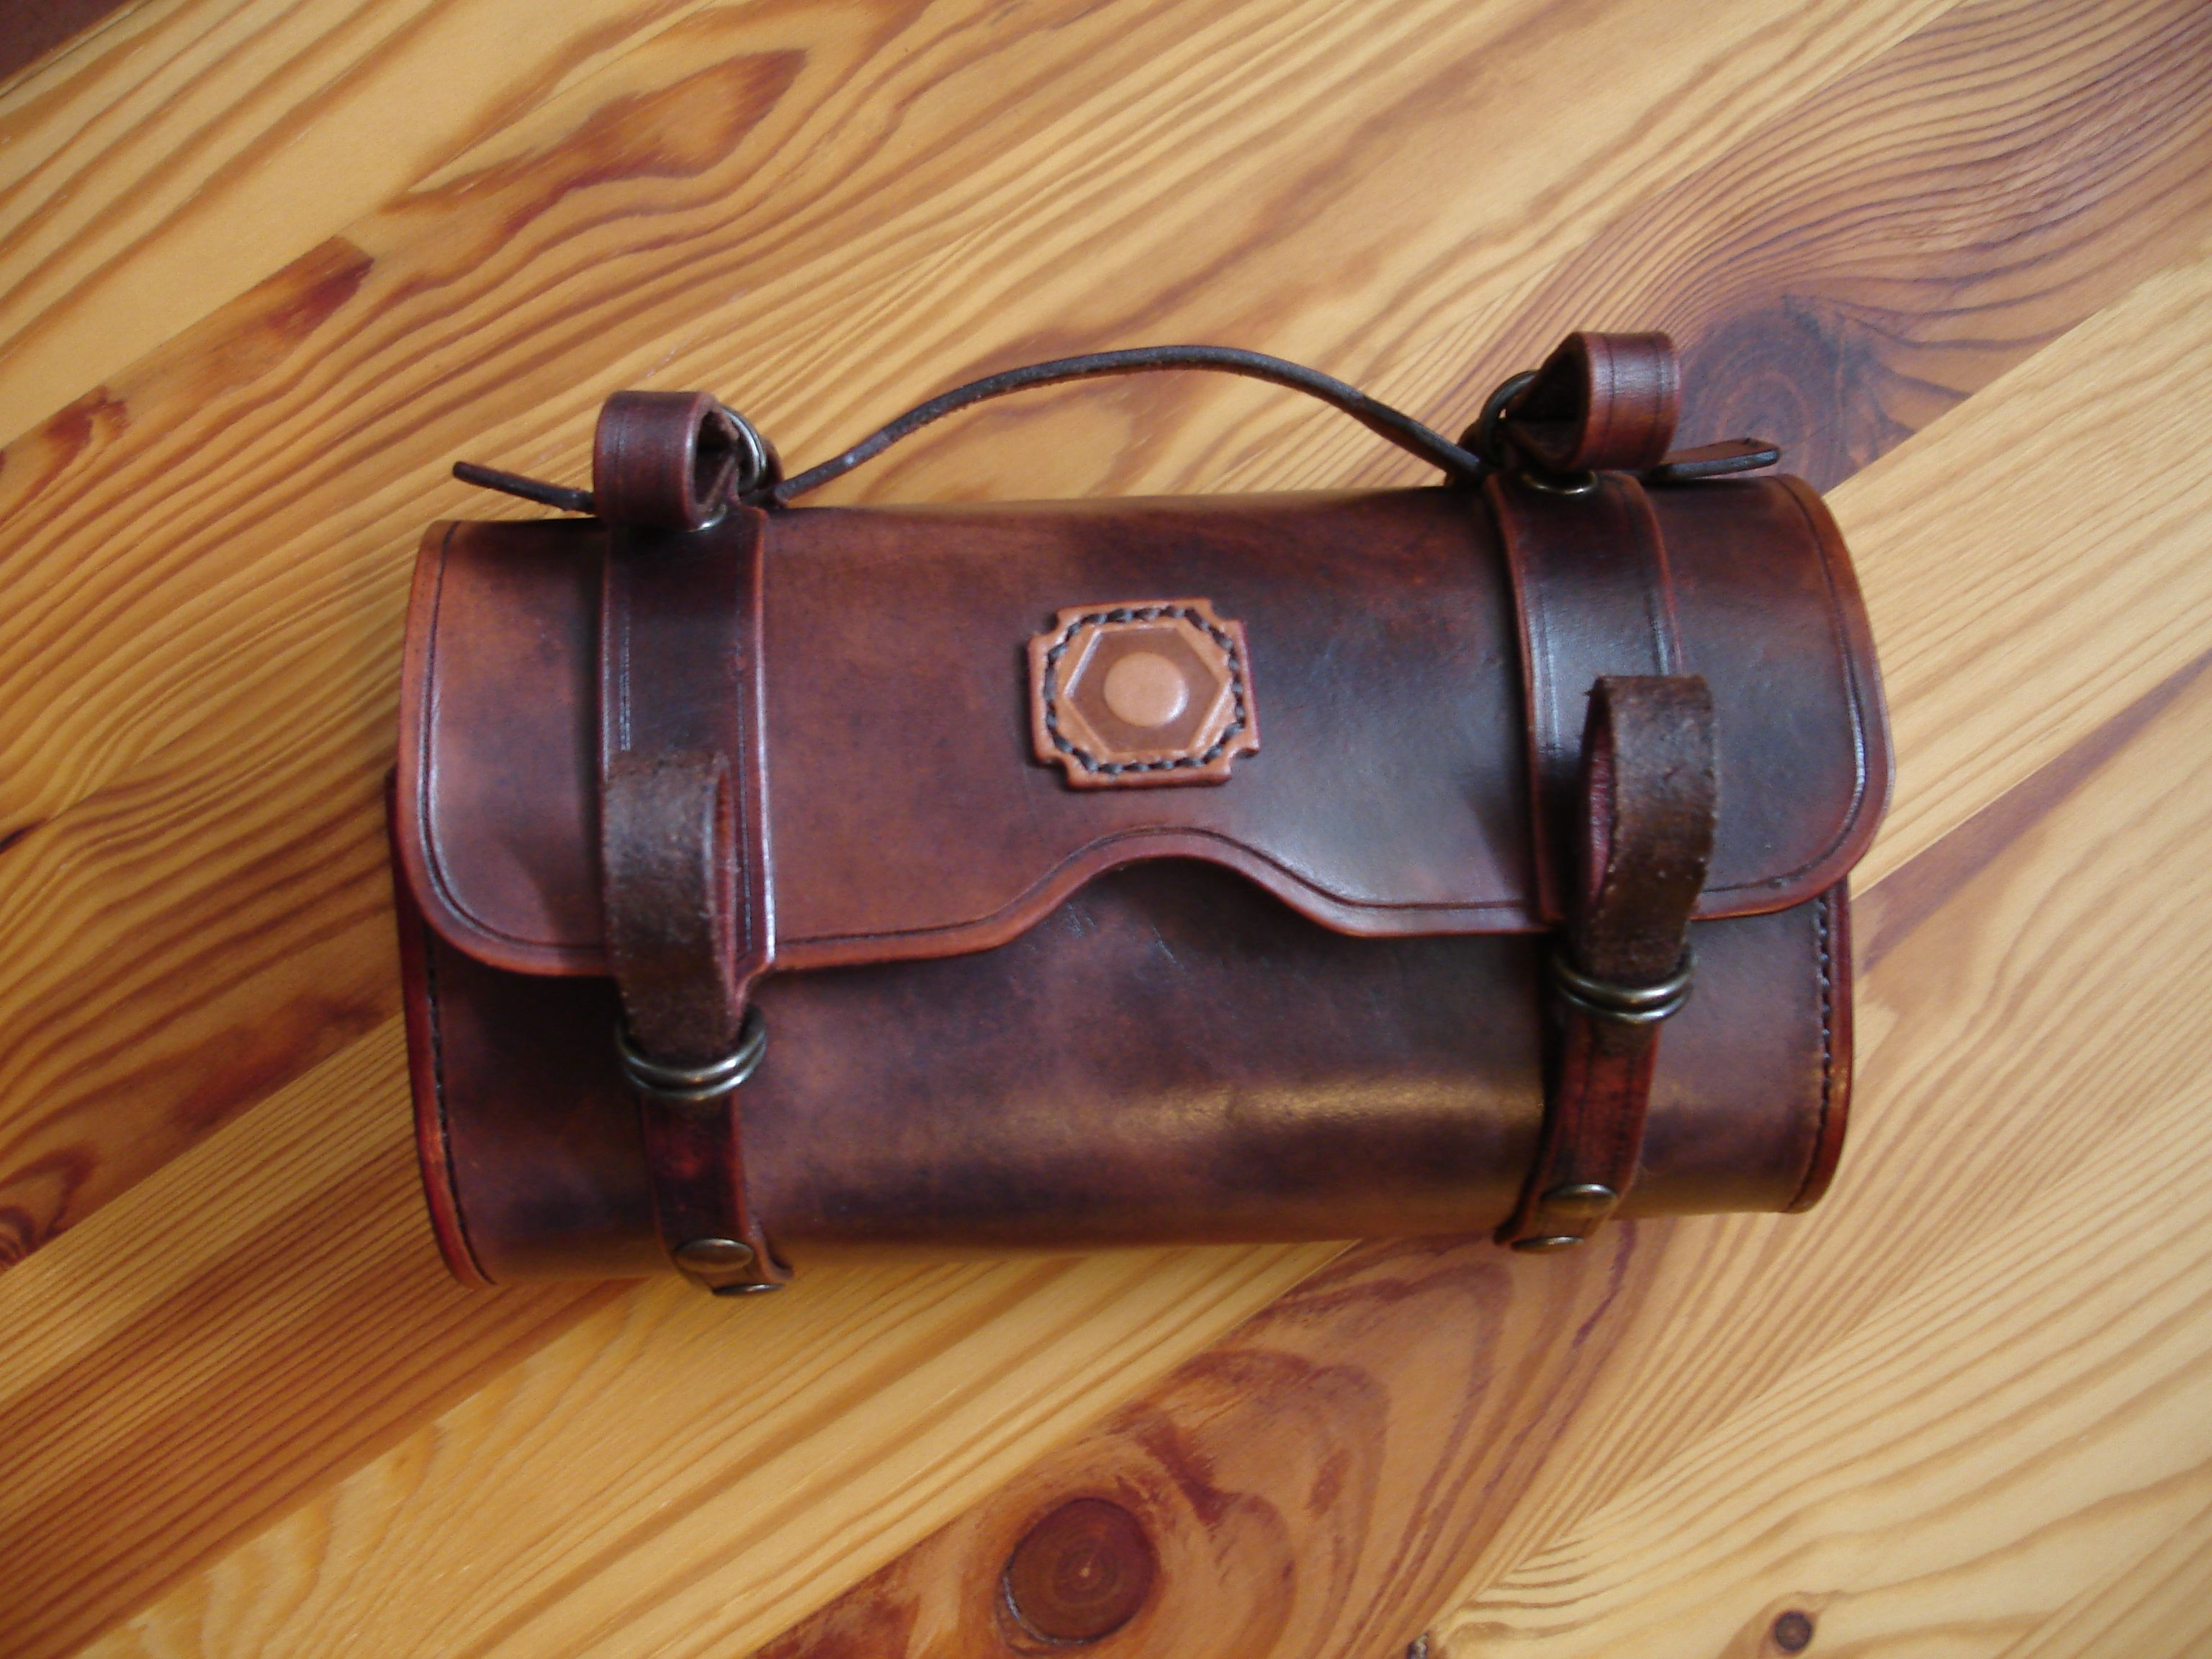 Pin by Leather Craftsman on Case tools bike / motorbike